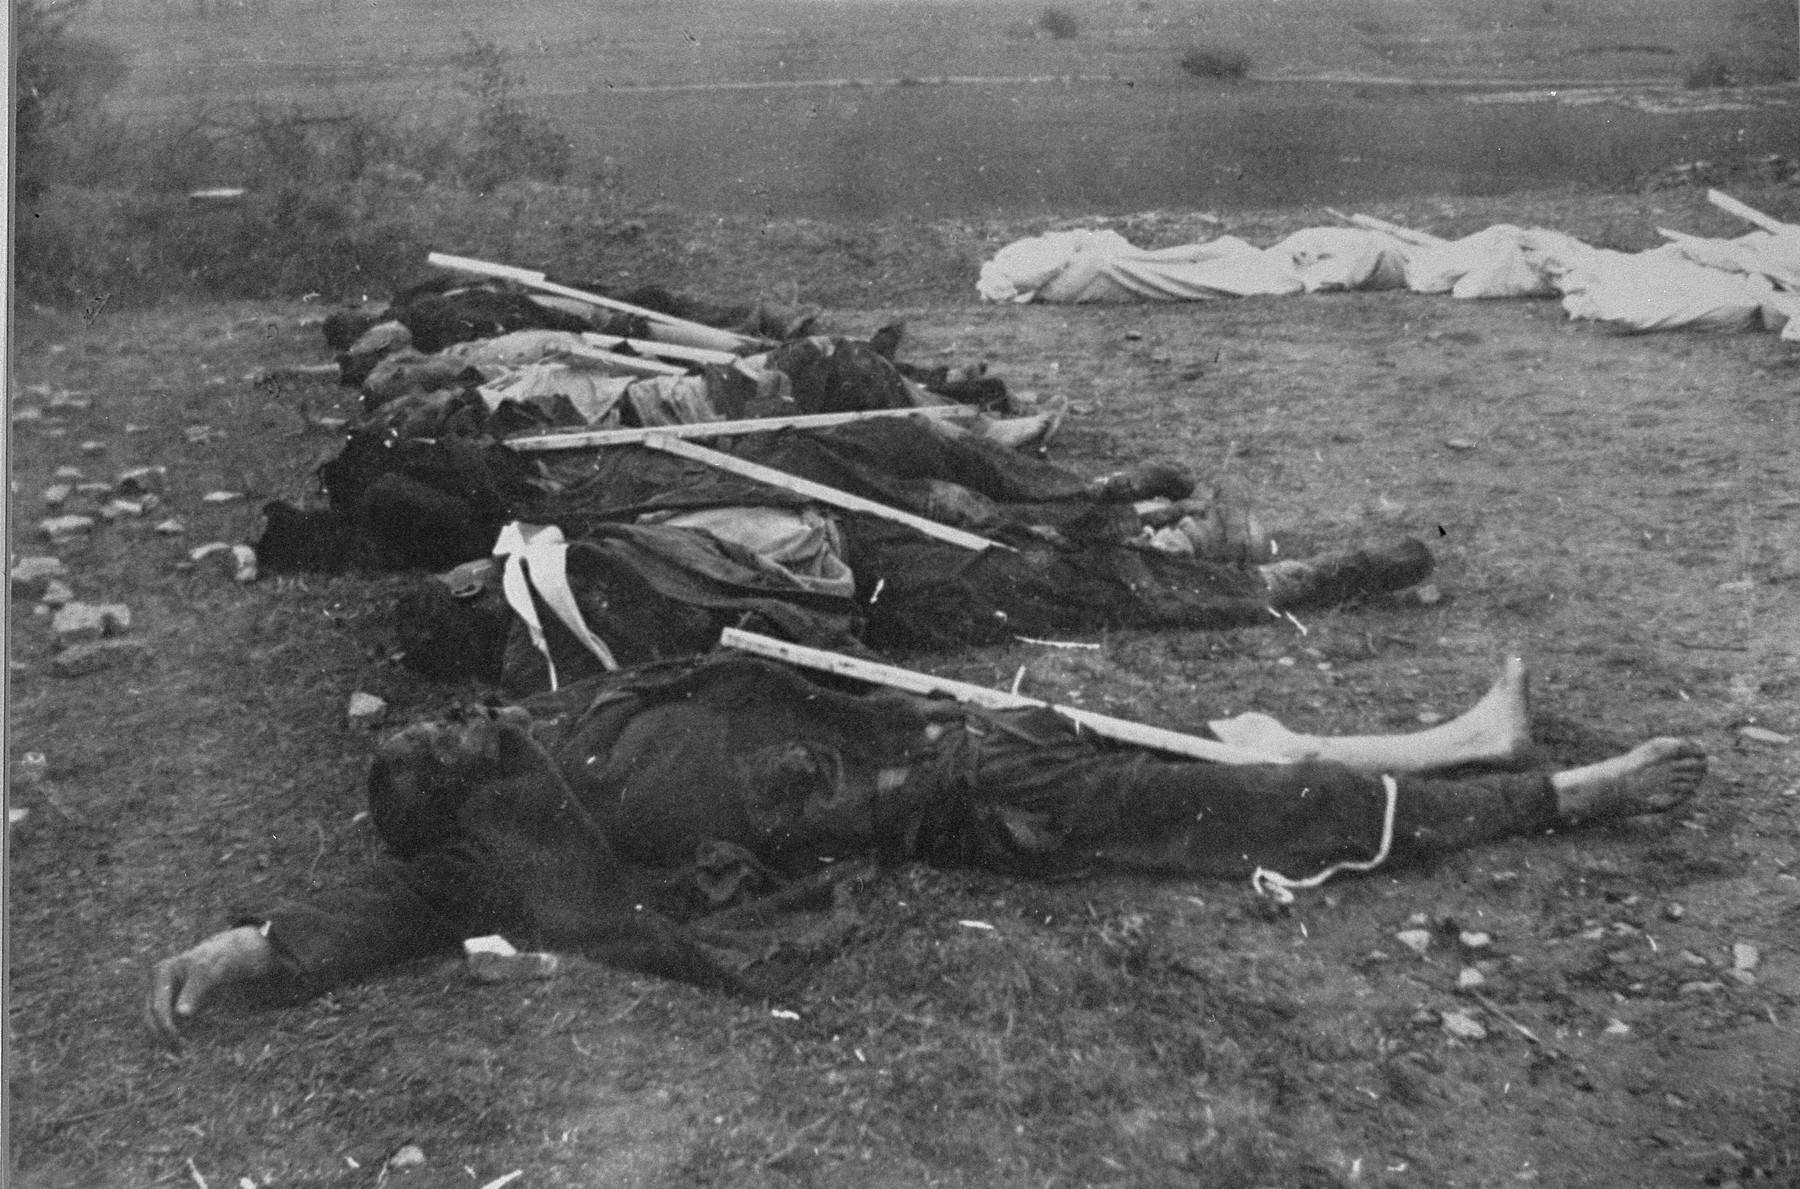 Corpses awaiting burial.